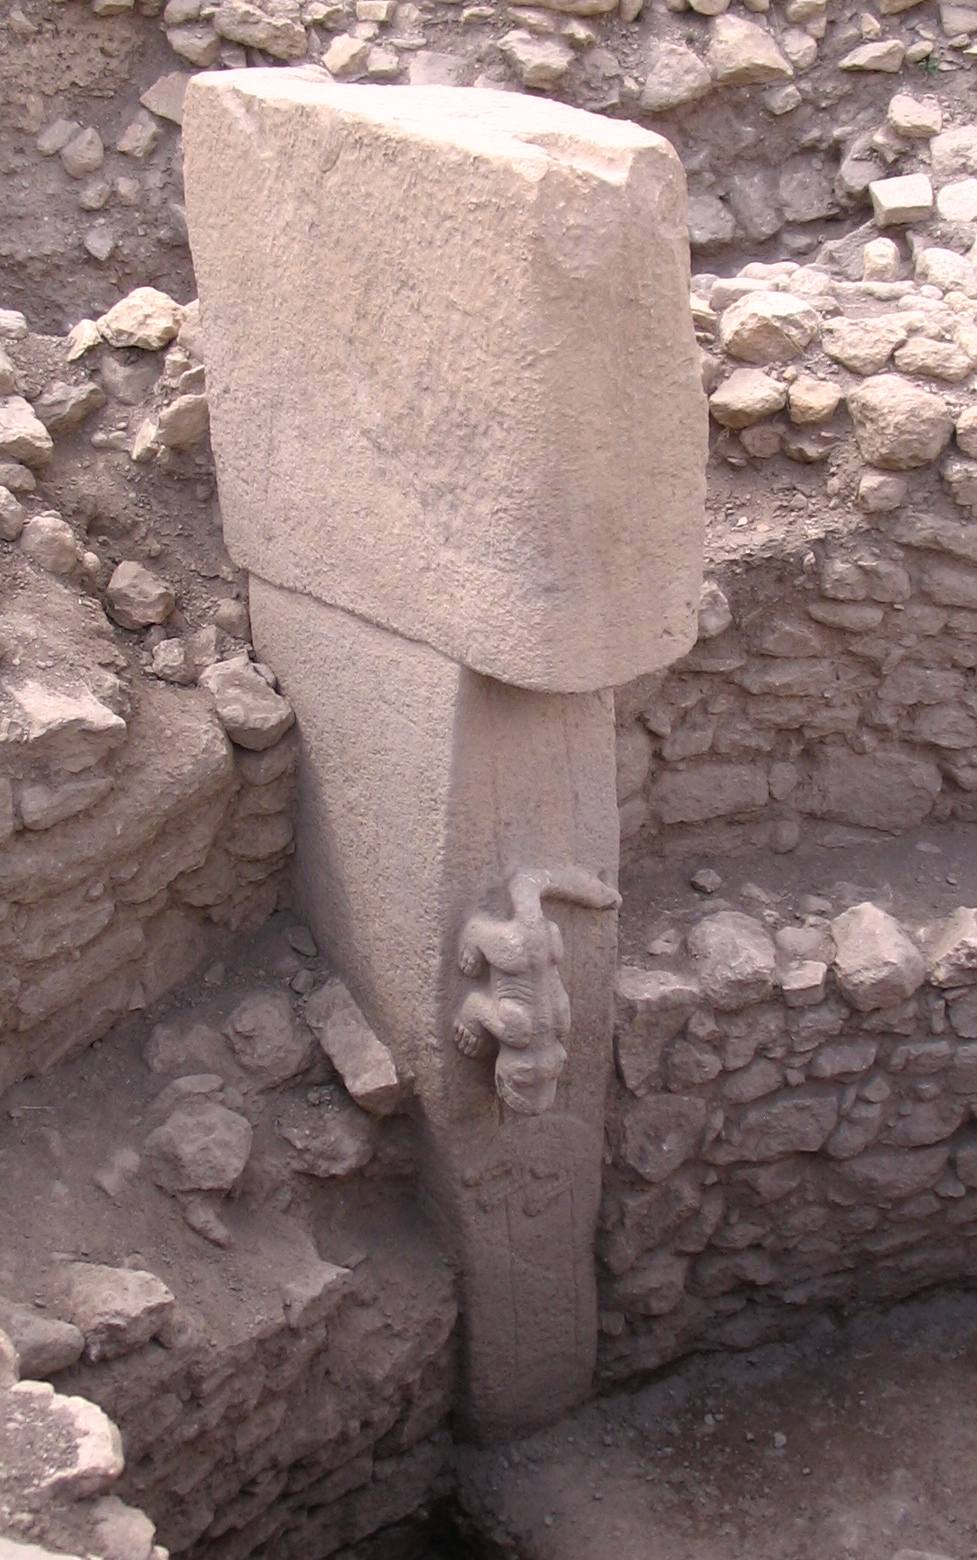 """GobeklitepeHeykel"" by Cannon A75, but image later modified. Licensed under Public Domain via Commons - https://commons.wikimedia.org/wiki/File:GobeklitepeHeykel.jpg#/media/File:GobeklitepeHeykel.jpg"